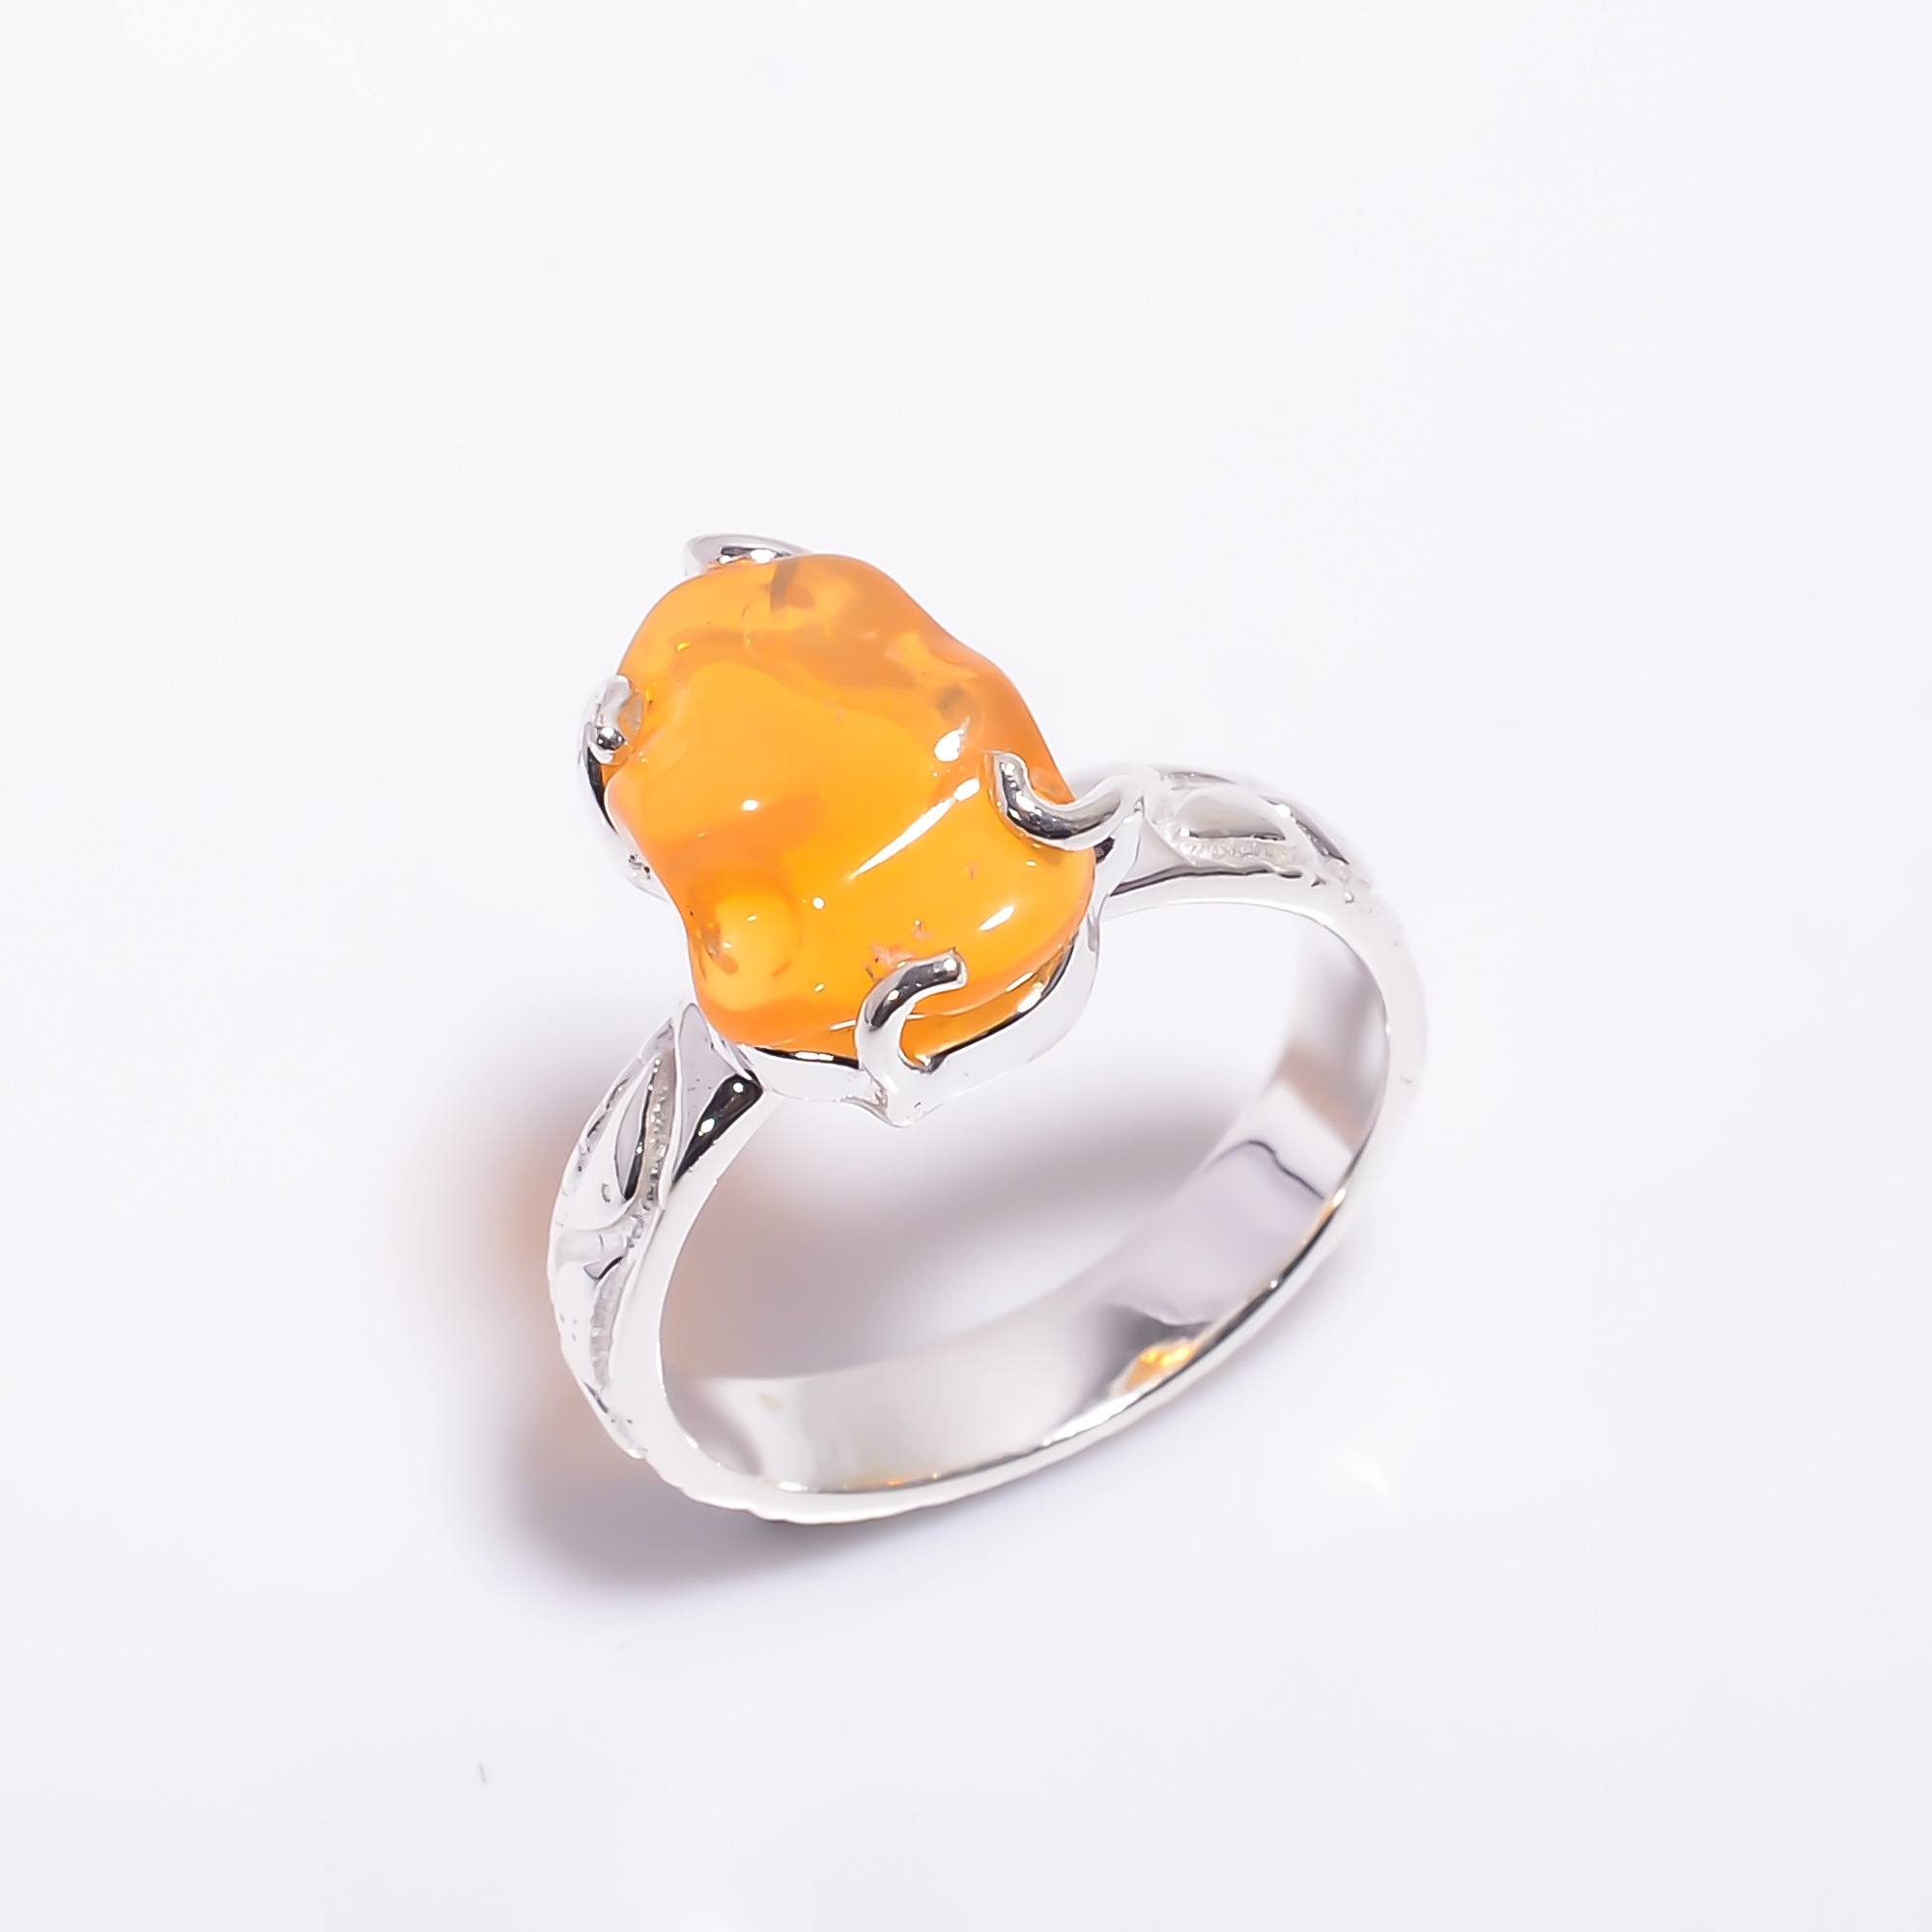 Mexican Opal Raw Gemstone 925 Sterling Silver Ring Size US 7